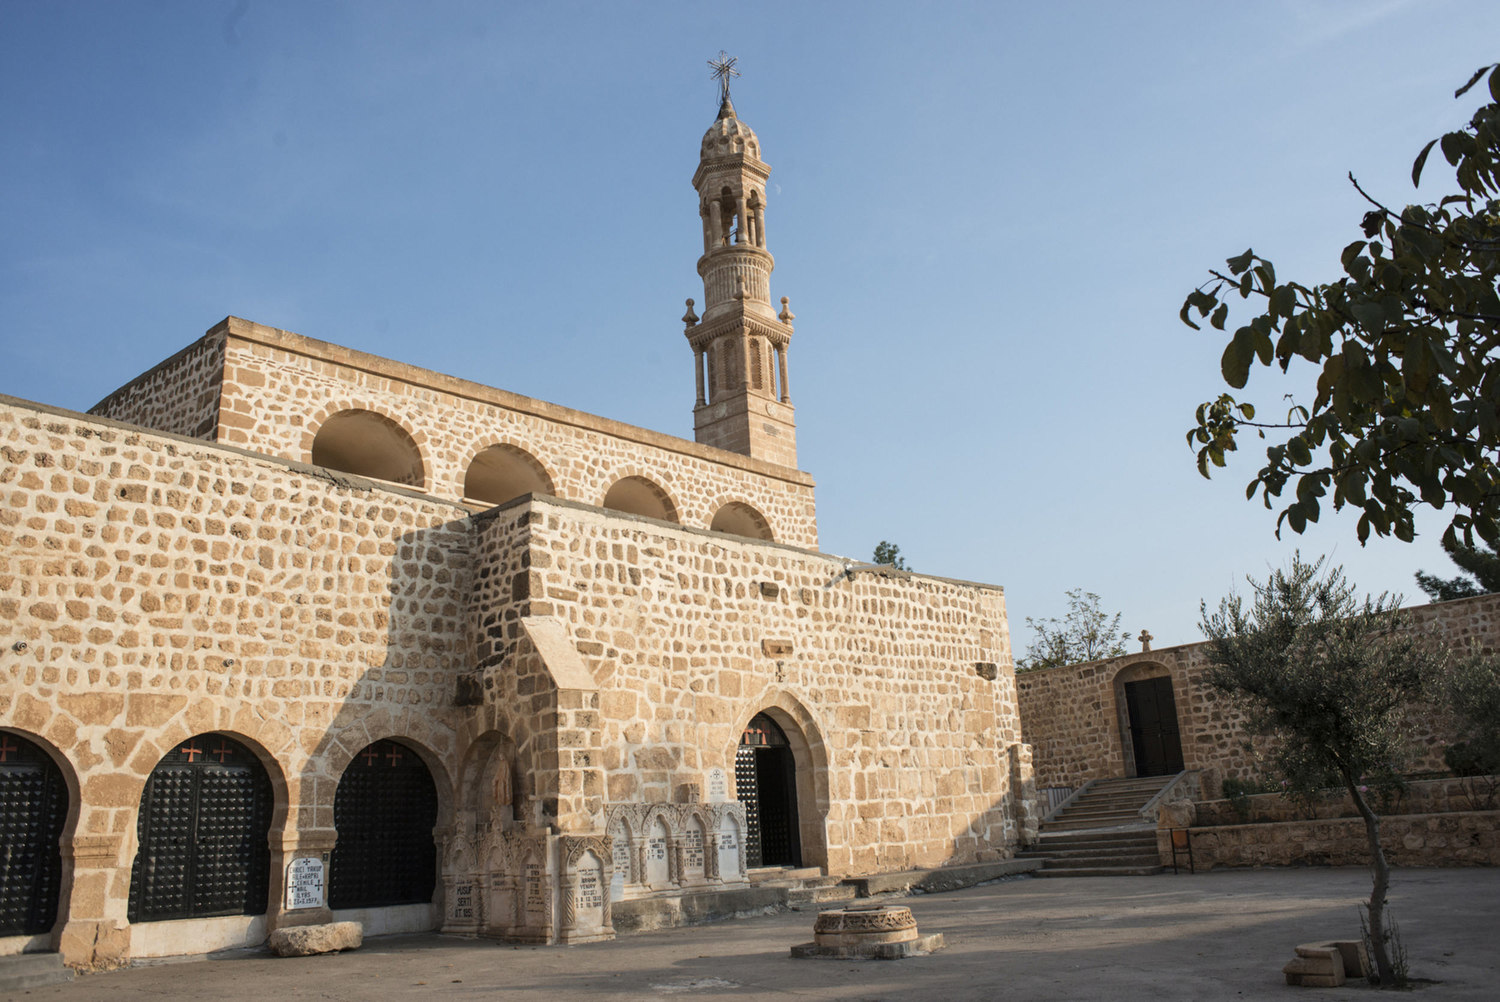 The exterior of the chapel of Mor Abraham, a monastary located on the outskirts of Midyat, Turkey.